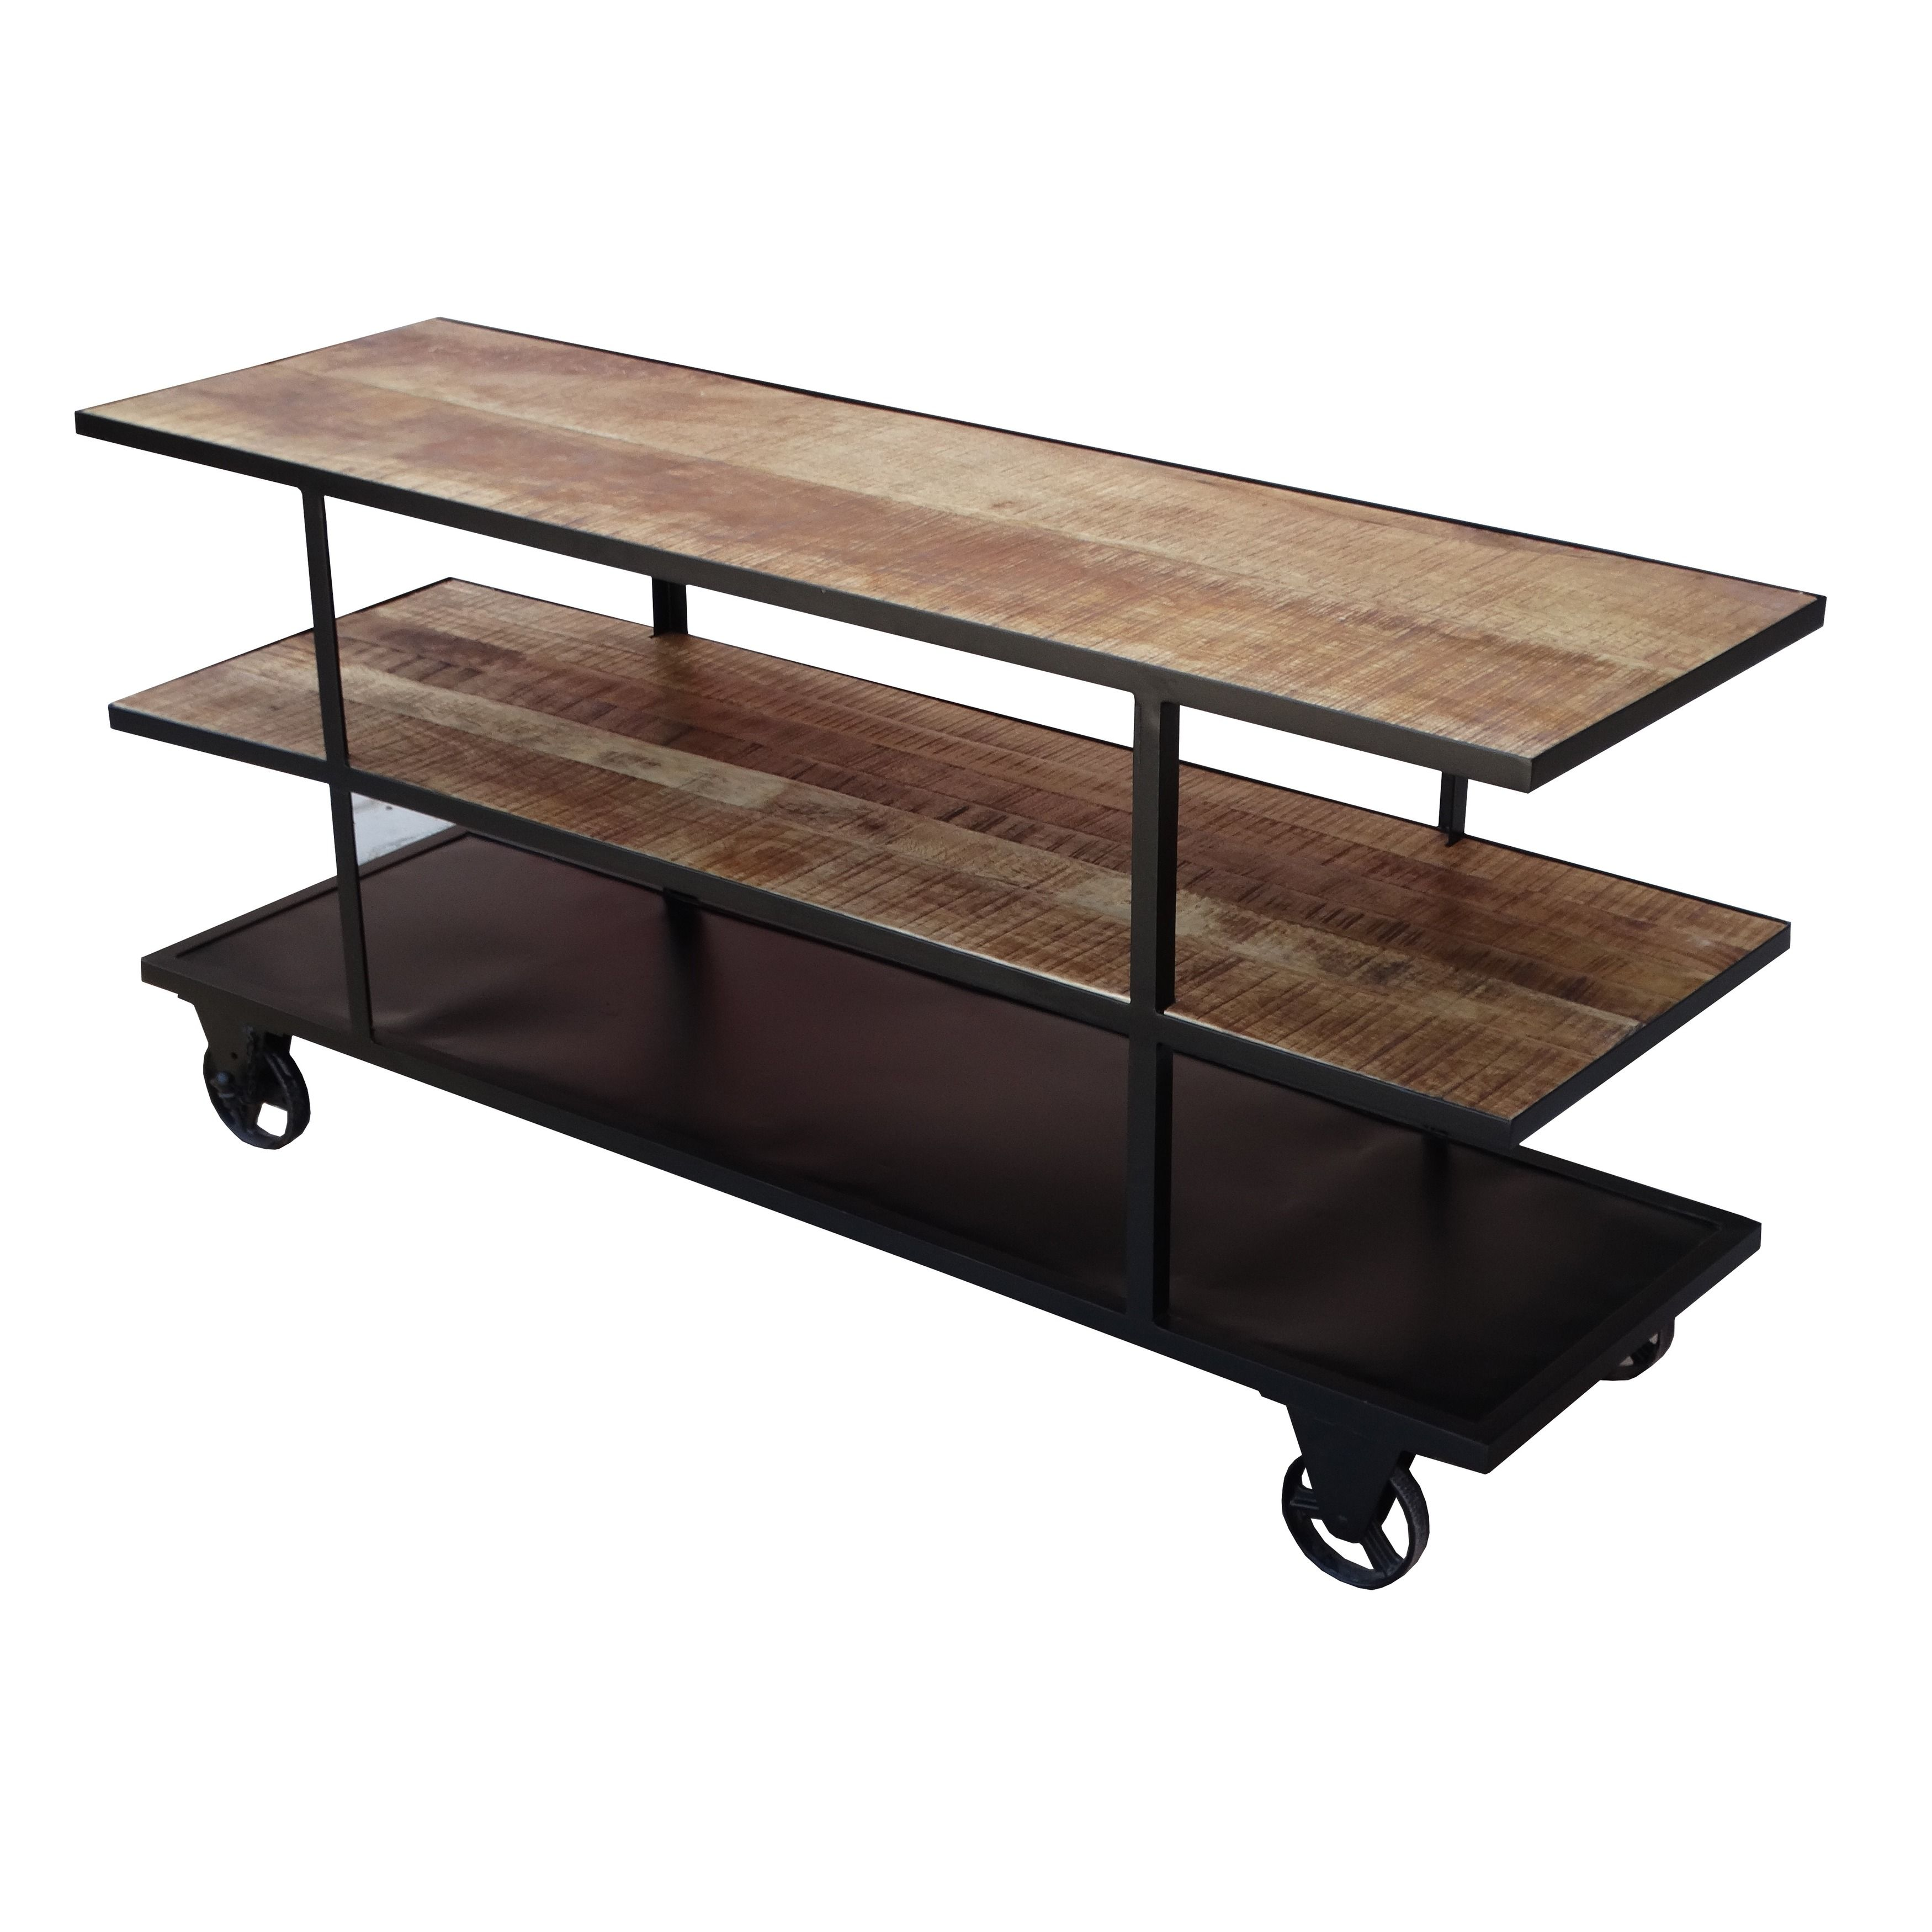 Sofa Cloth Online Shopping India Timbergirl Reclaimed Wood Media Console With Wheels Barn